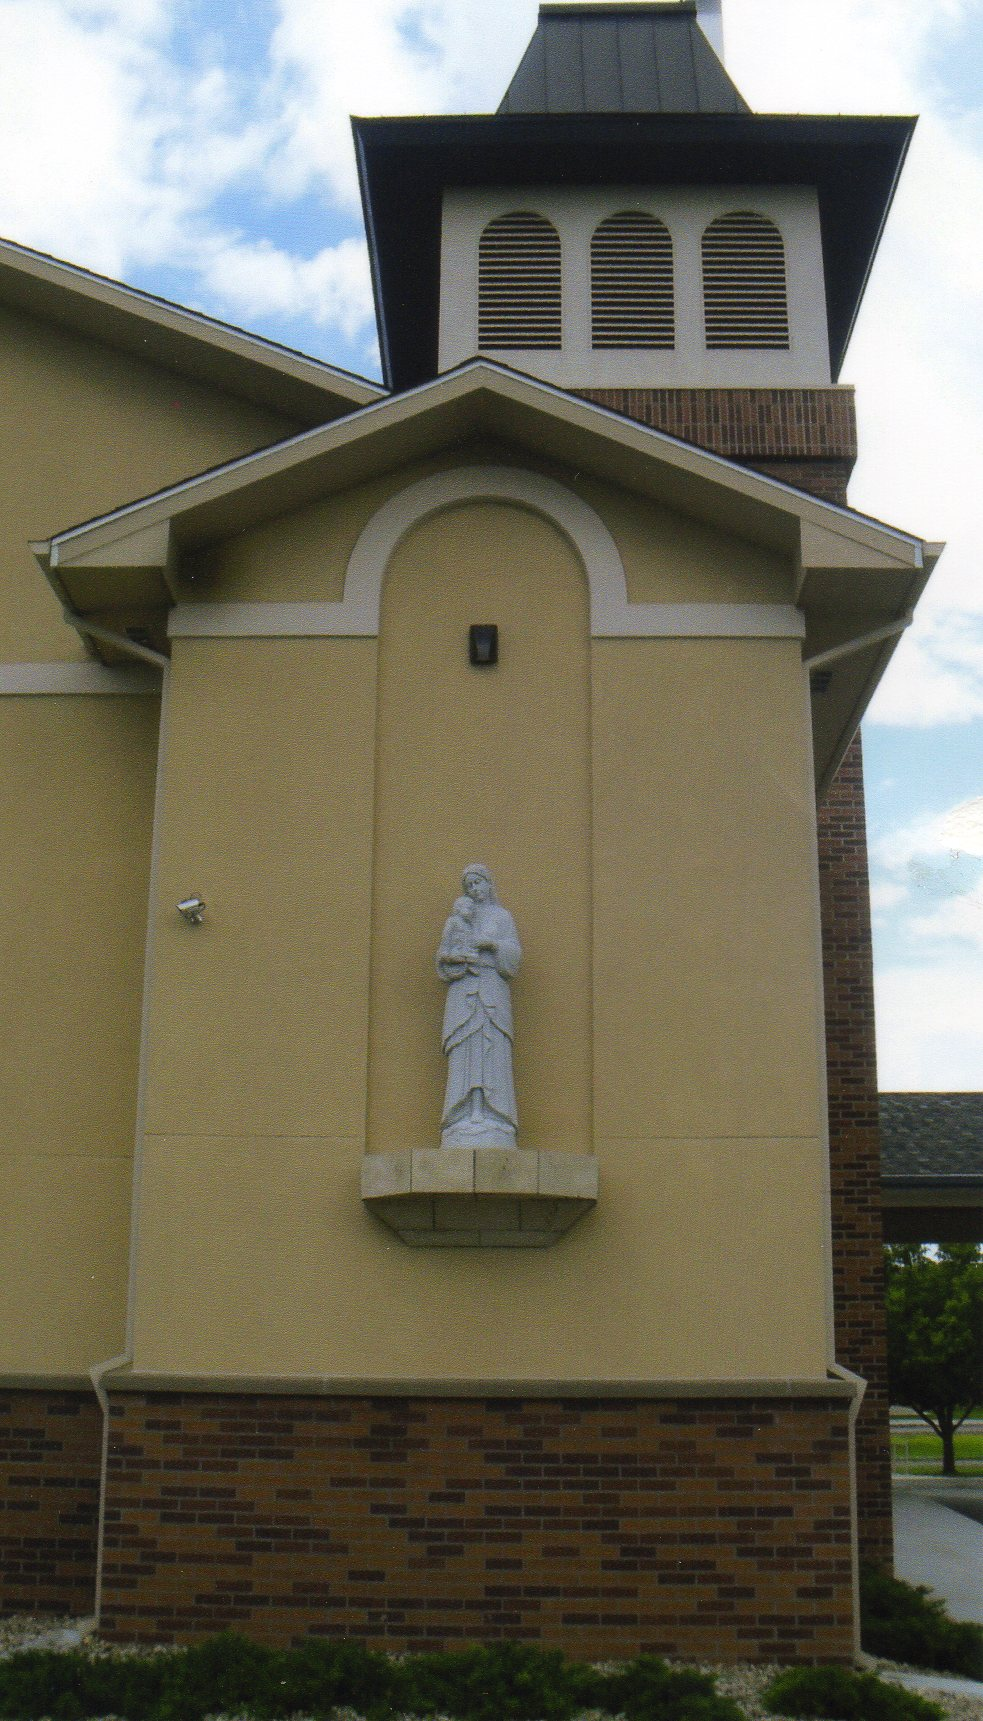 St Lawrence Statue